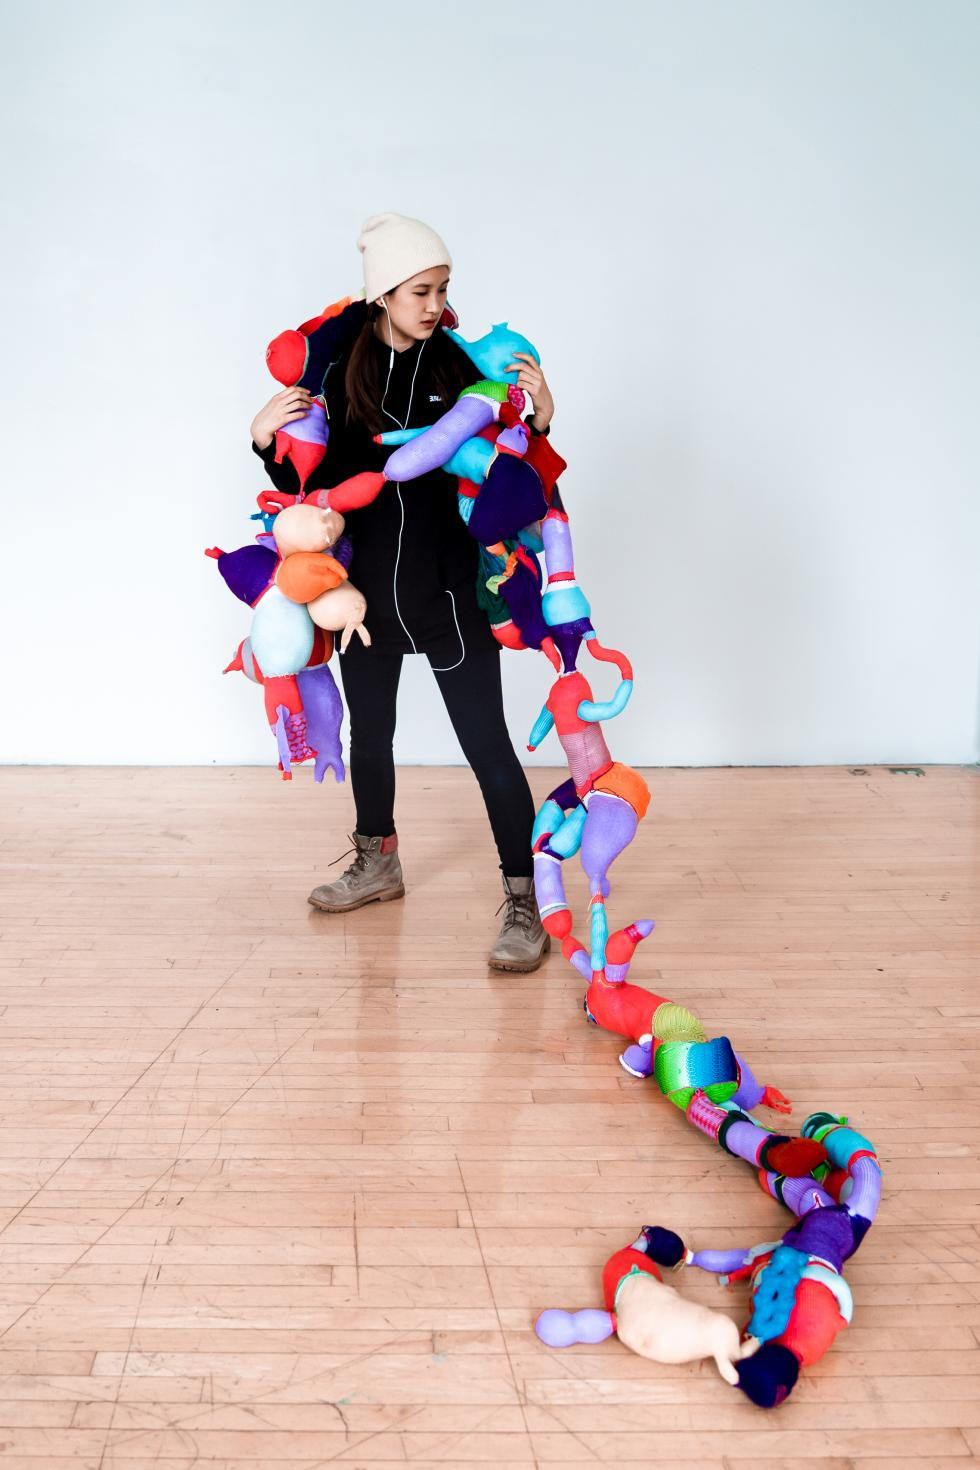 Colorful abstract shapes sewn together, draped across a woman wearing black clothes and gray boots.